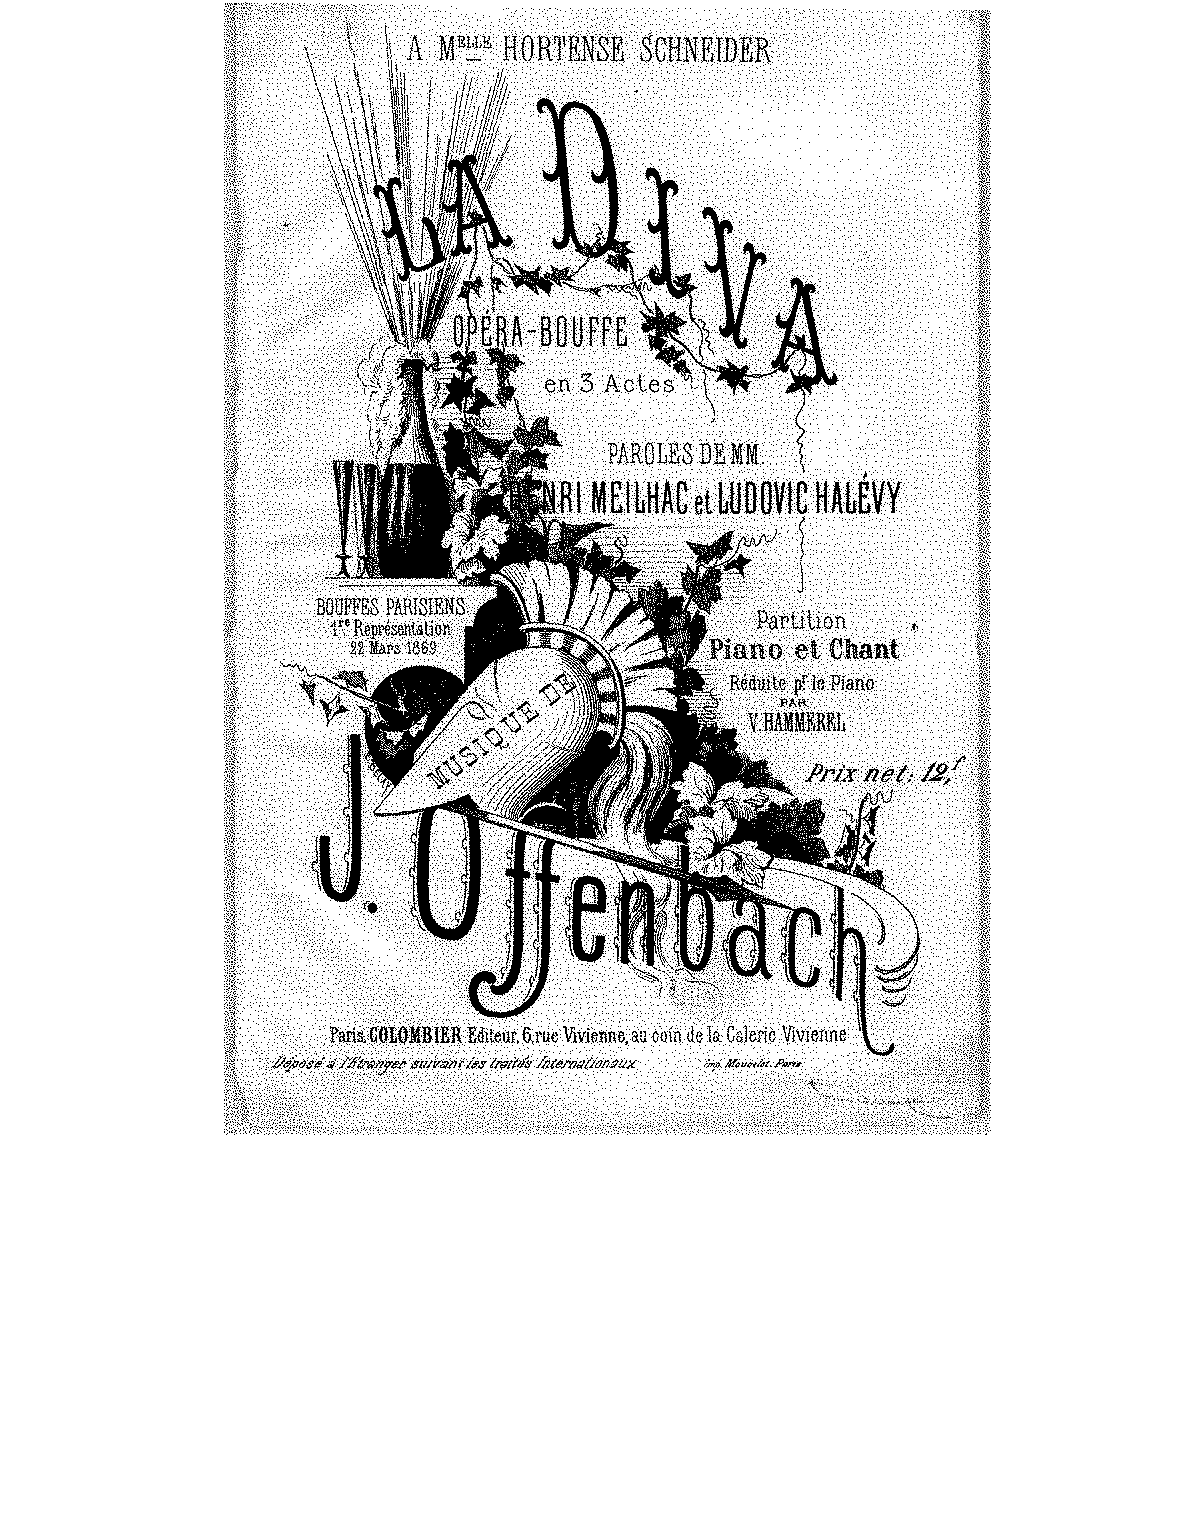 SIBLEY1802.7595.8e3d-39087011150903color.pdf